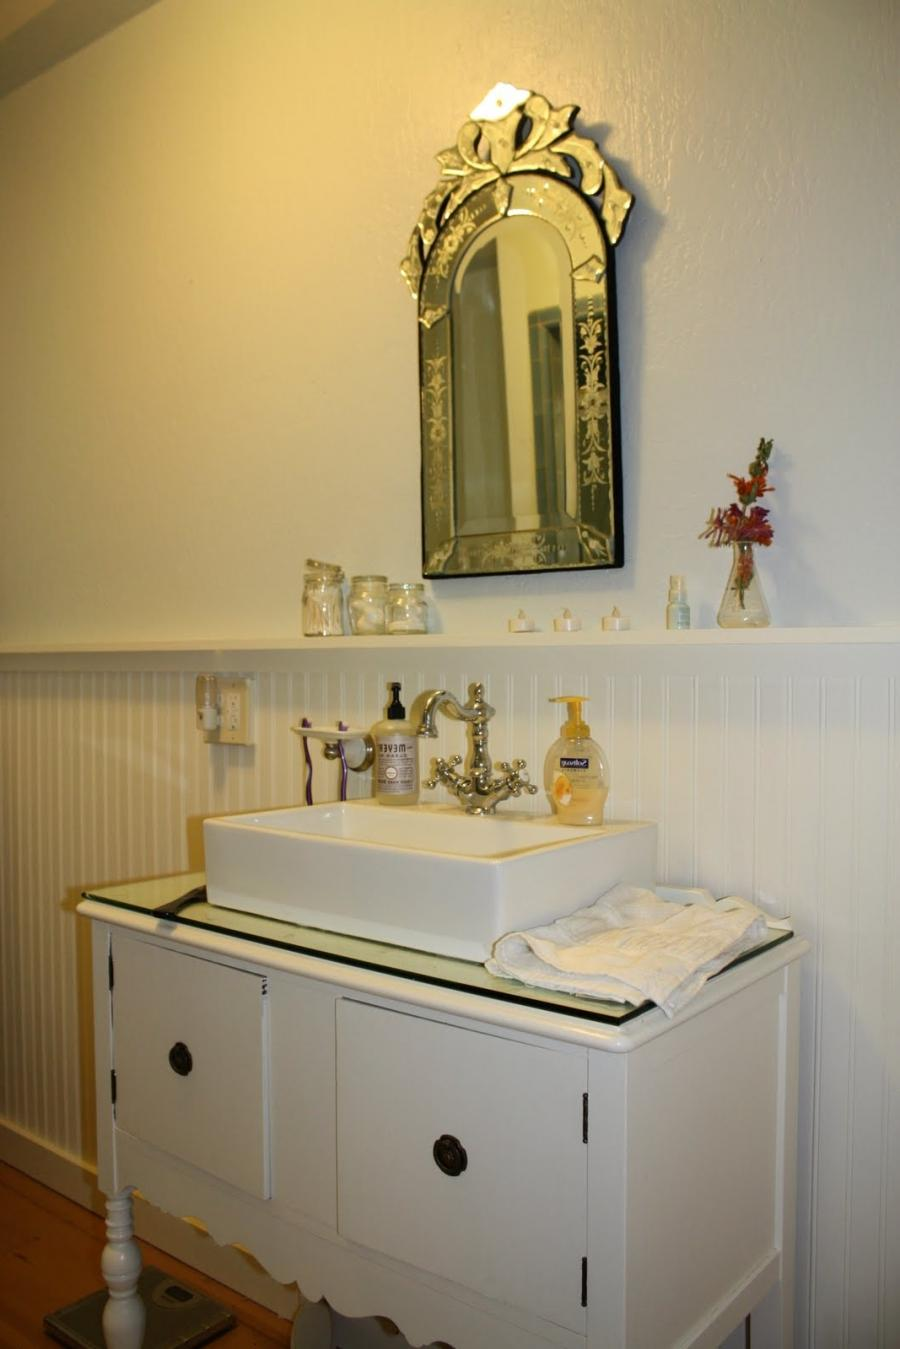 Bathroom remodeling wainscoat photos - Bathroom remodel ideas with wainscoting ...